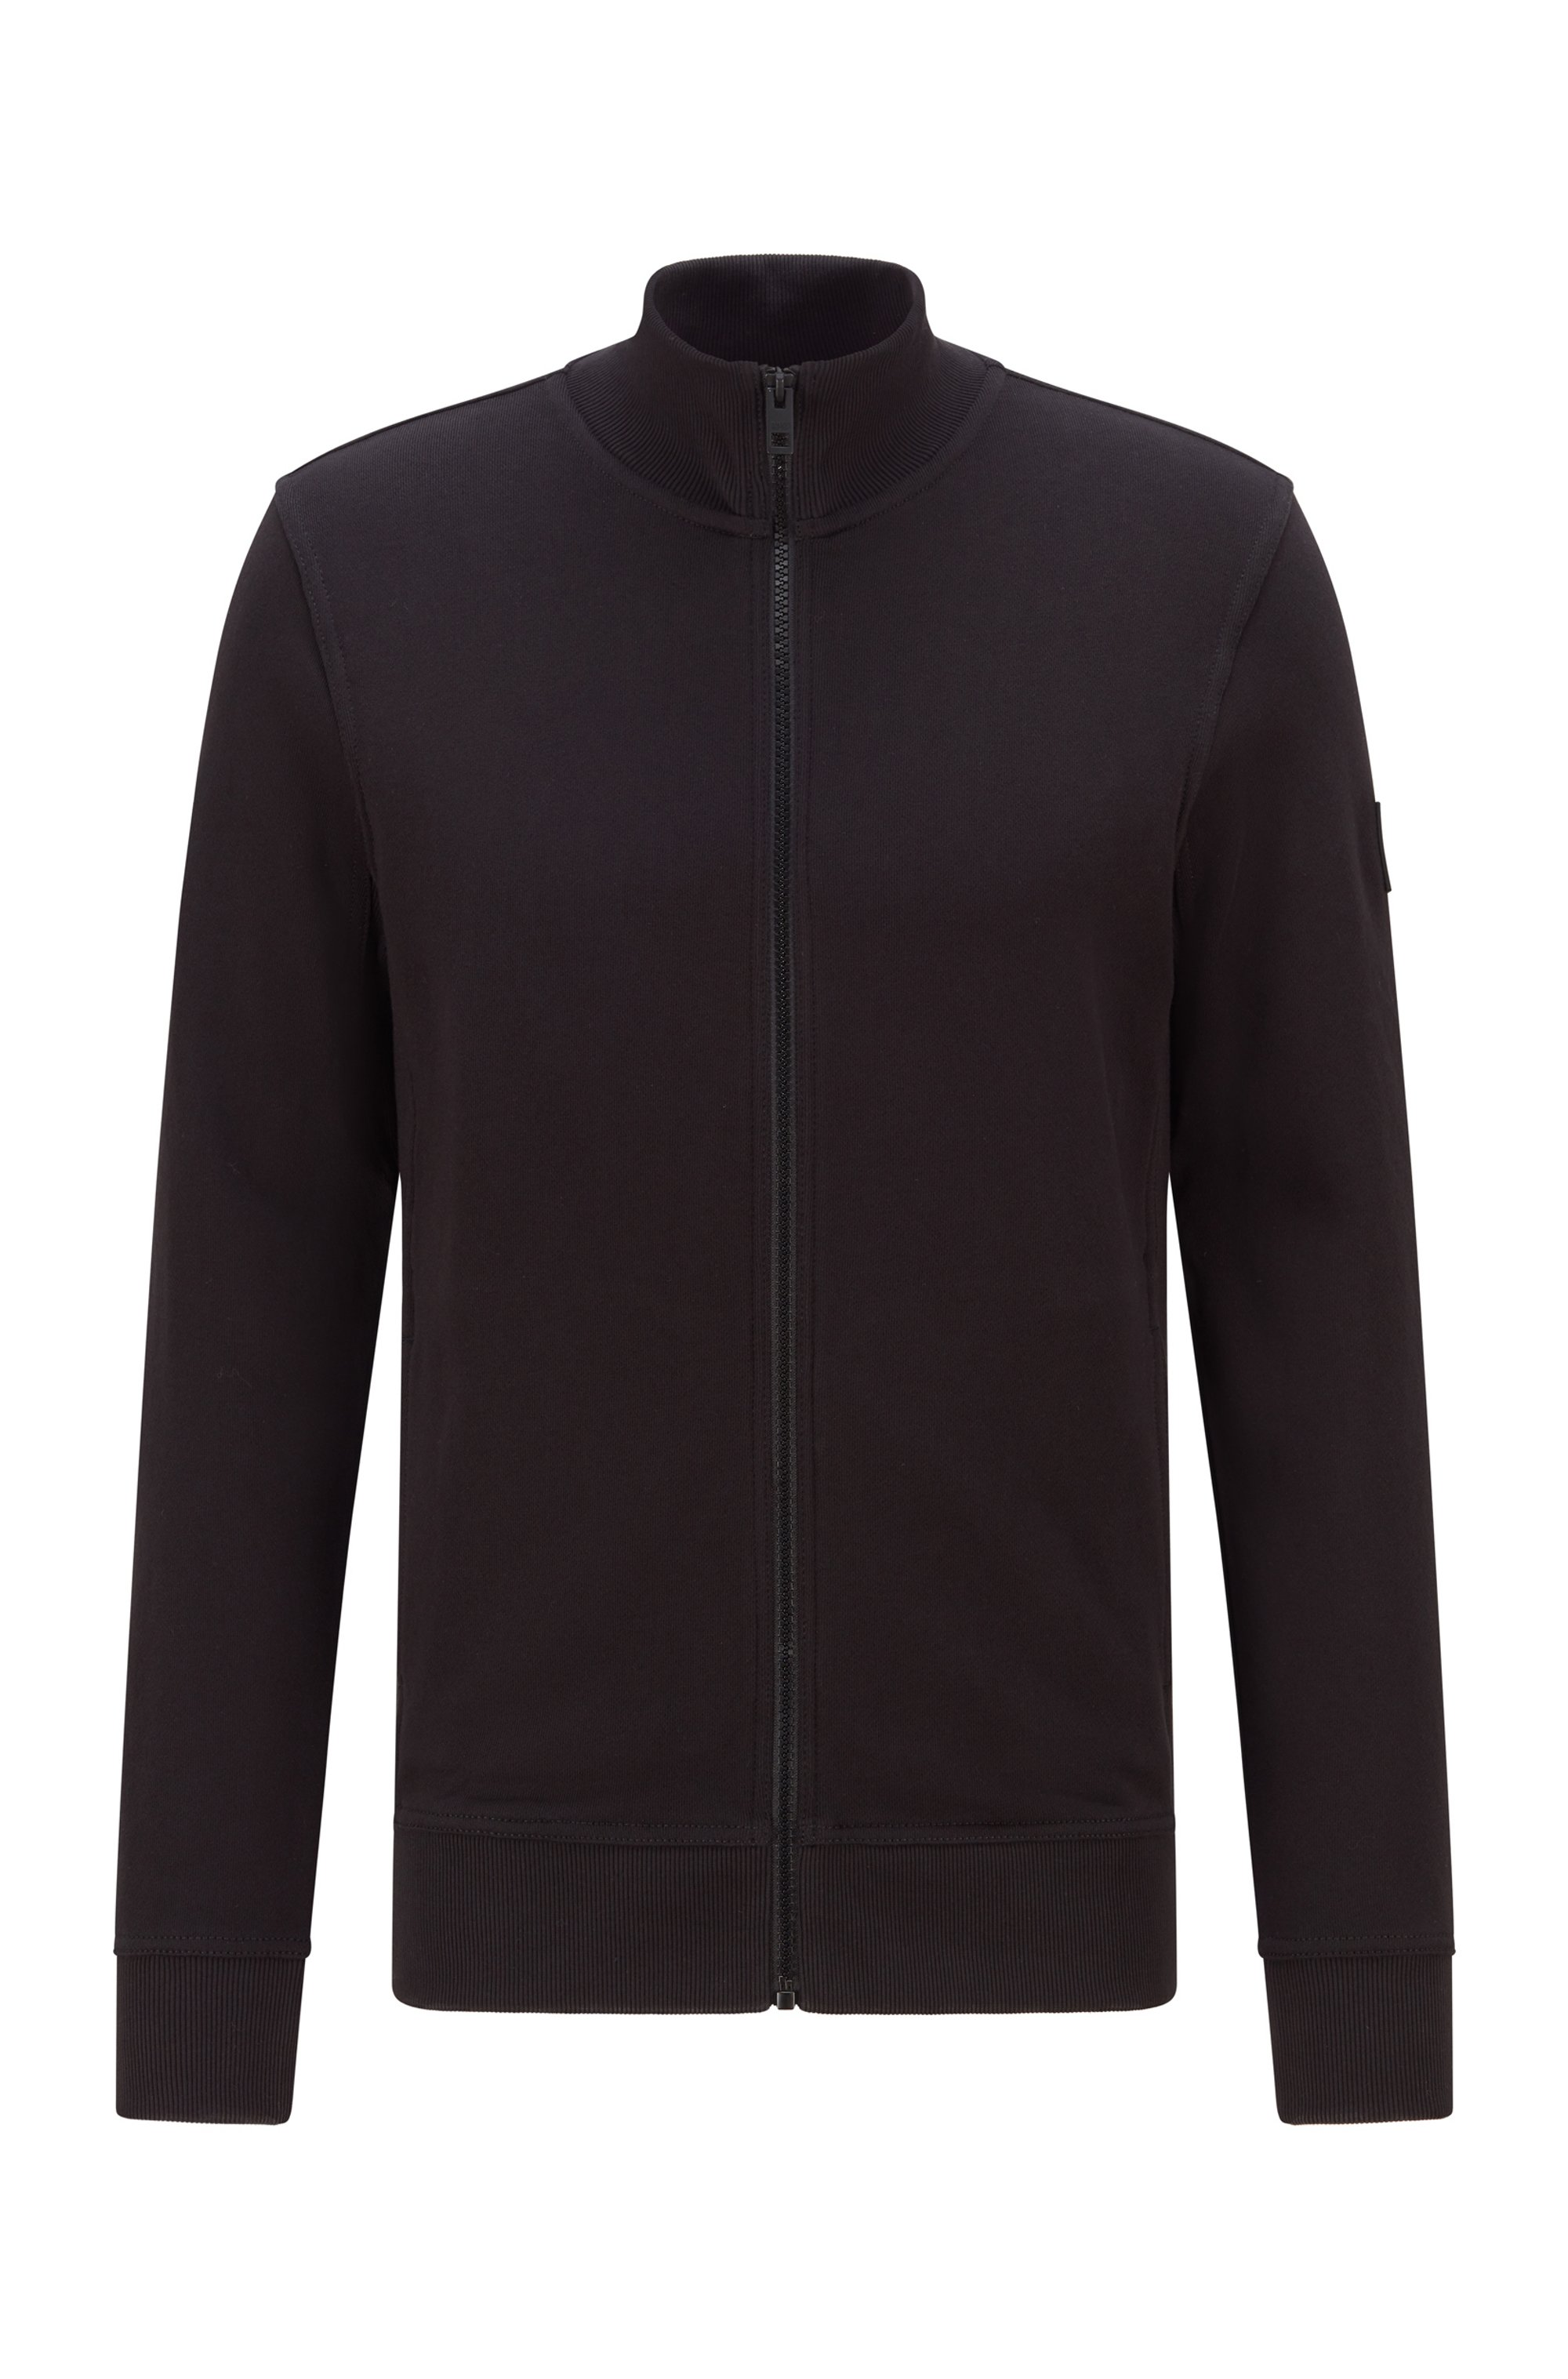 Relaxed-fit jersey jacket in African cotton, Black